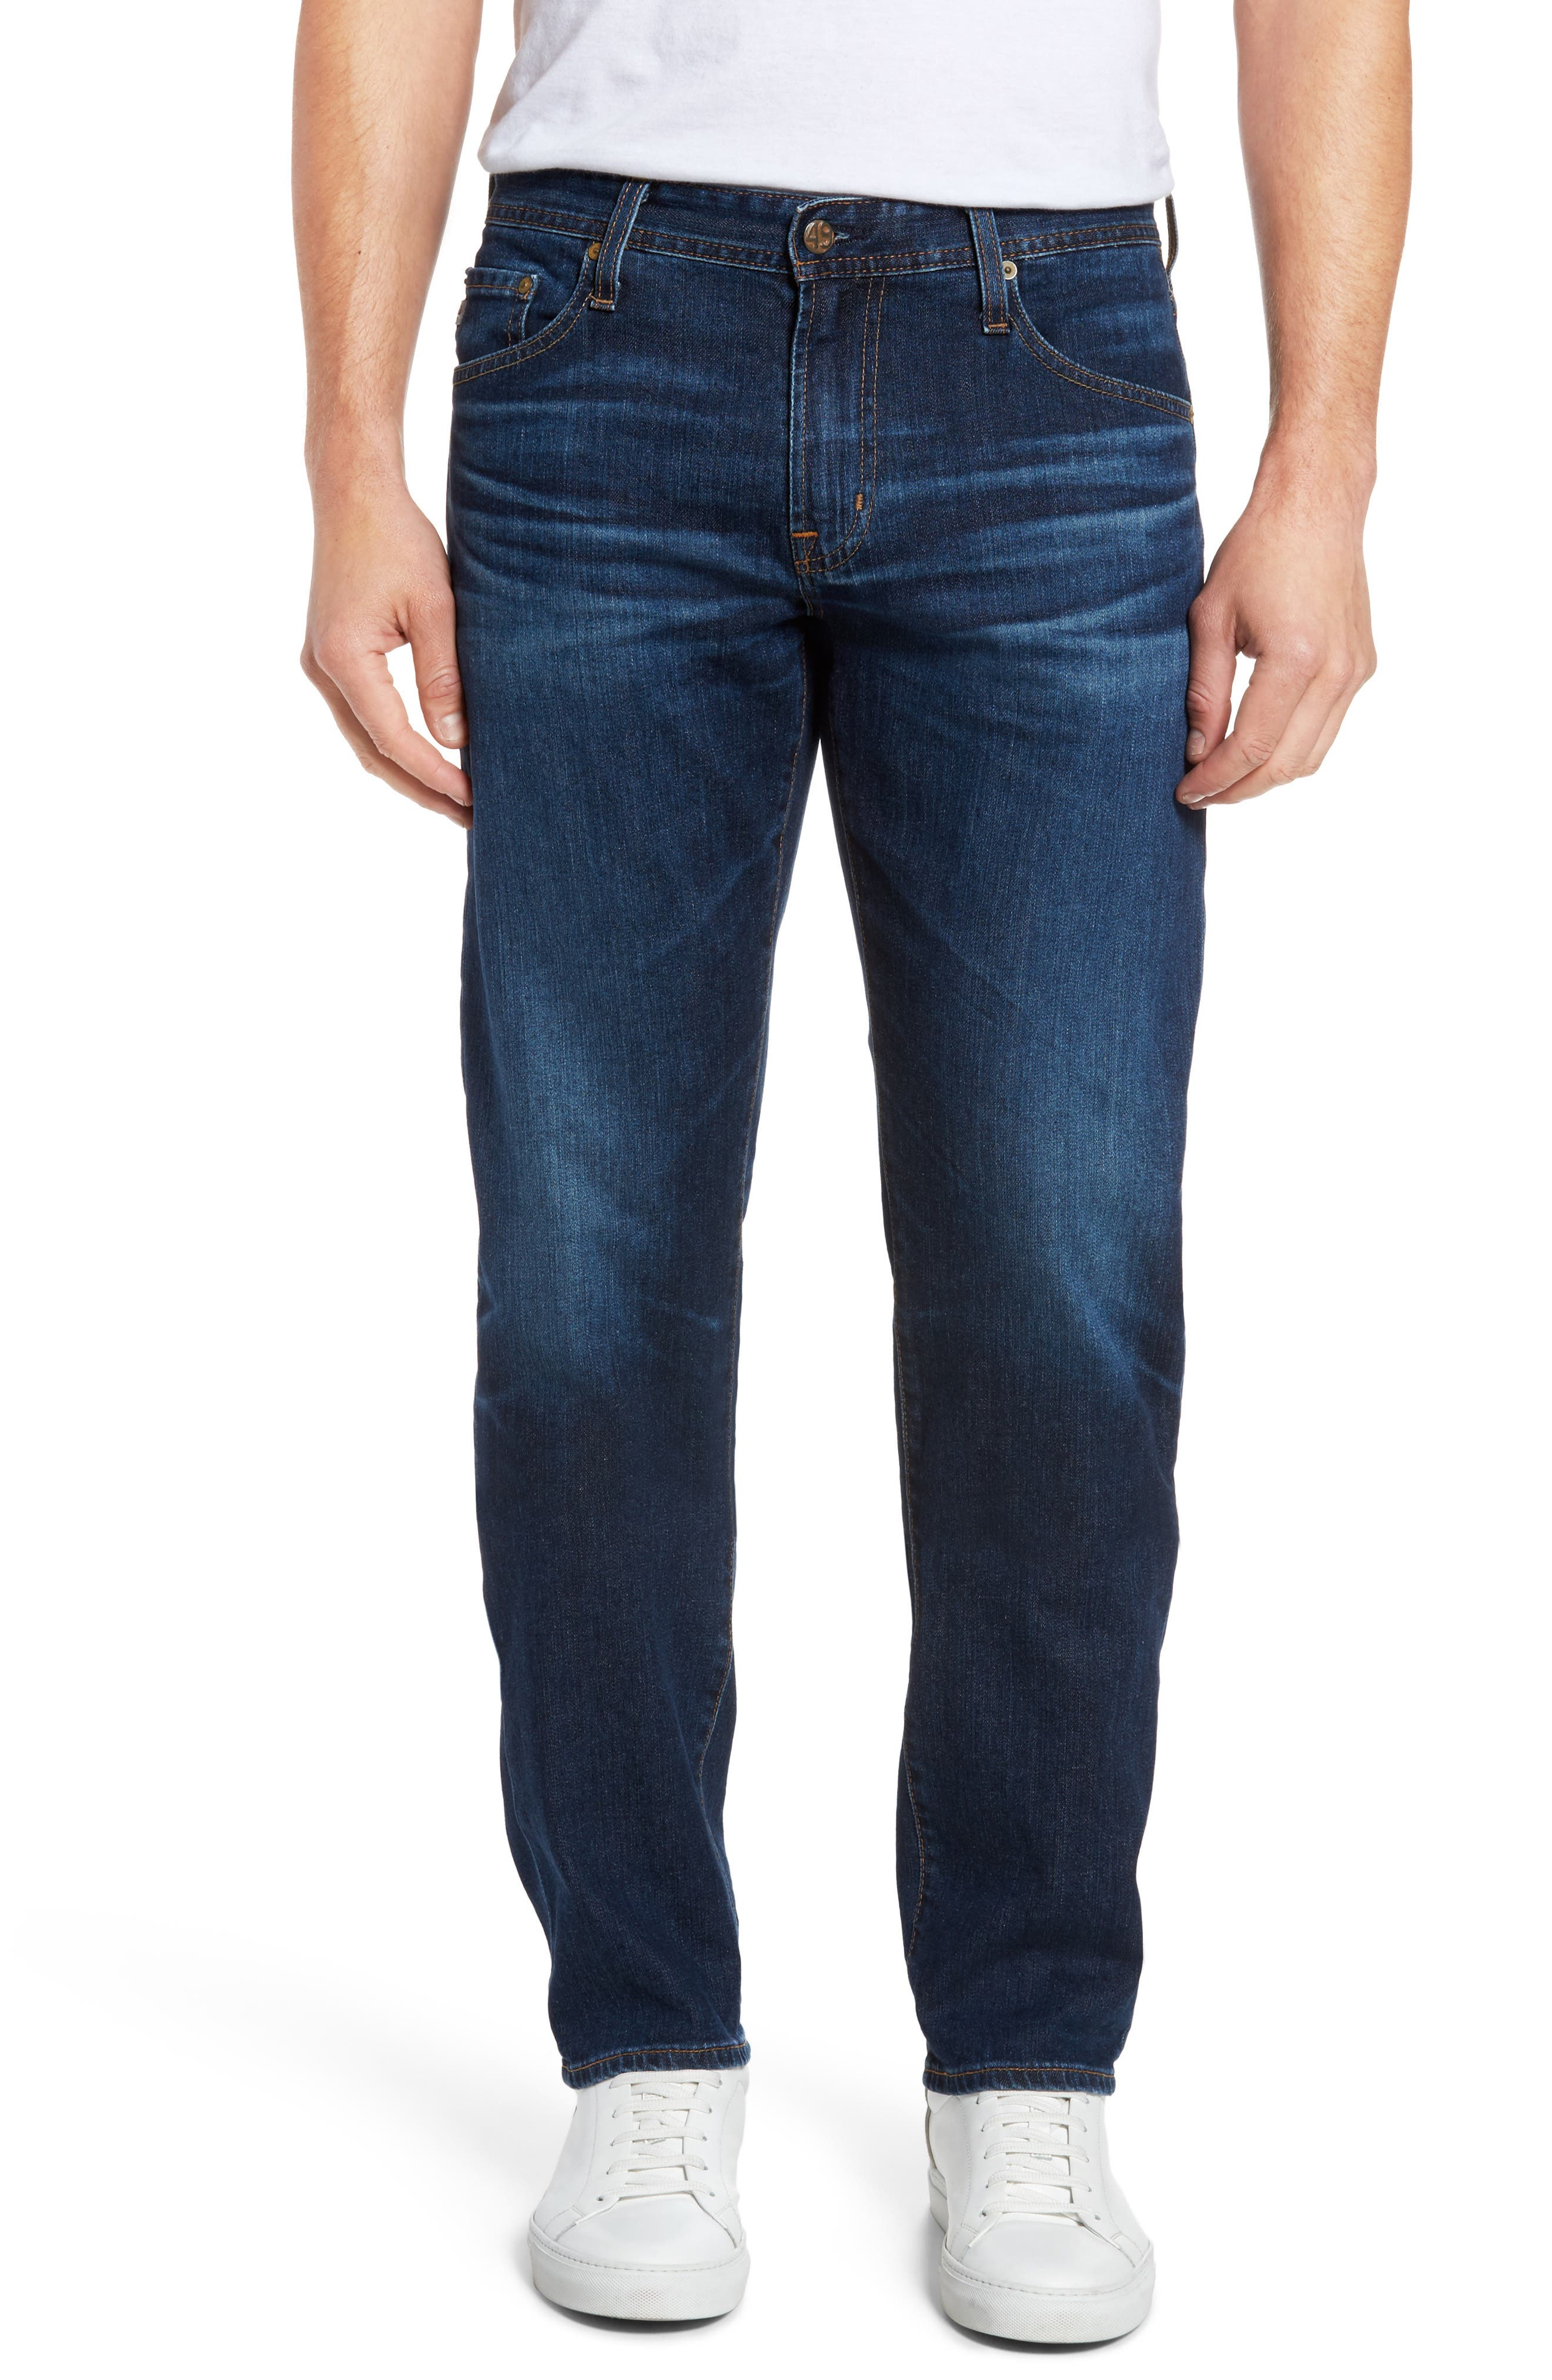 Alternate Image 1 Selected - AG Graduate Slim Straight Fit Jeans (6 Years Projector)